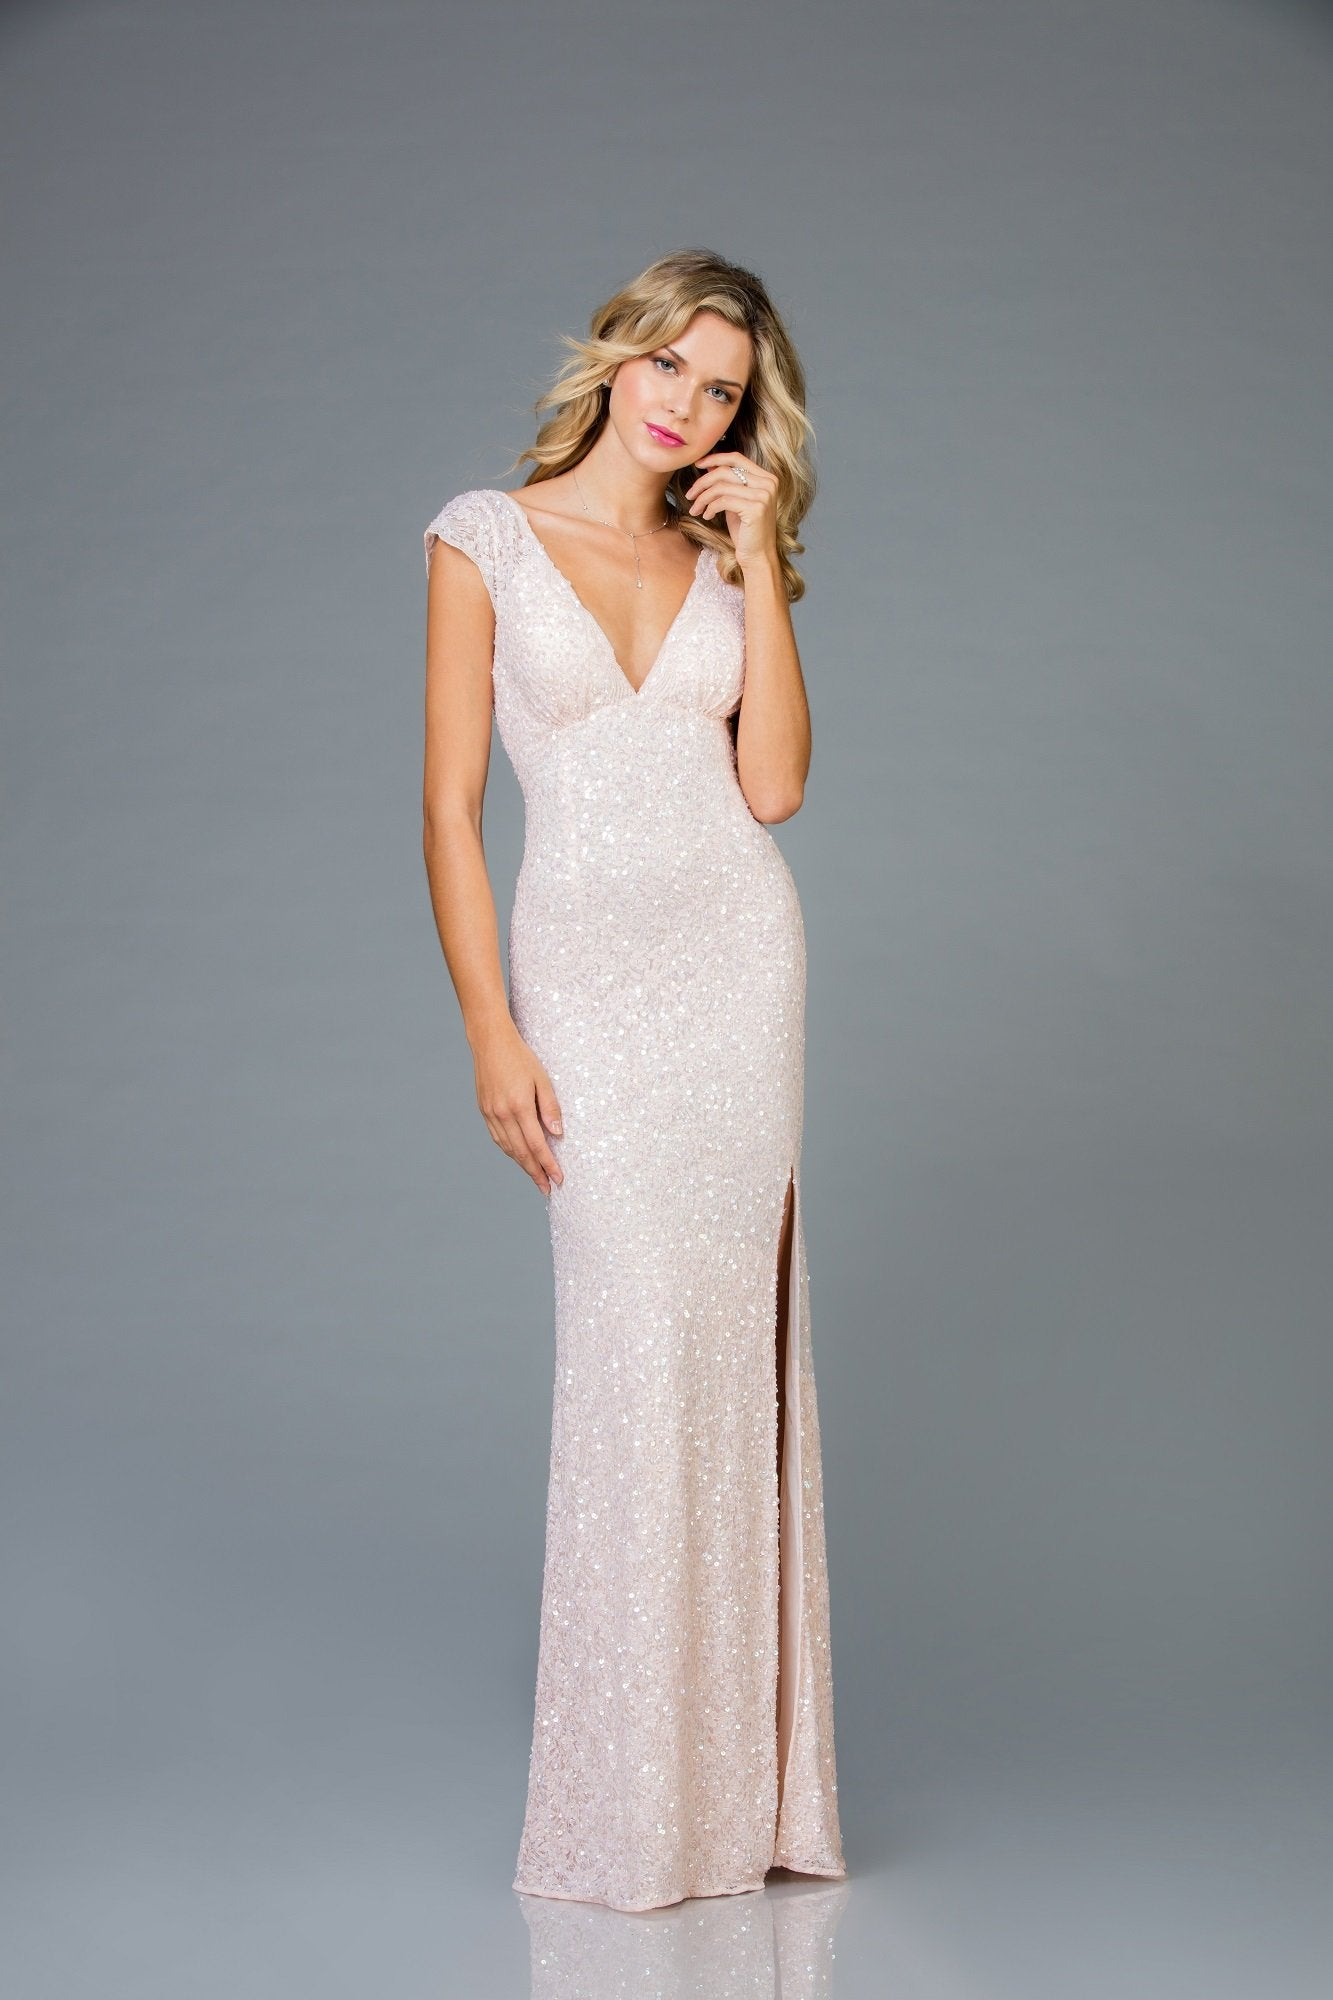 Scala Cap Sleeved Beaded Dress 48958 - Elbisny